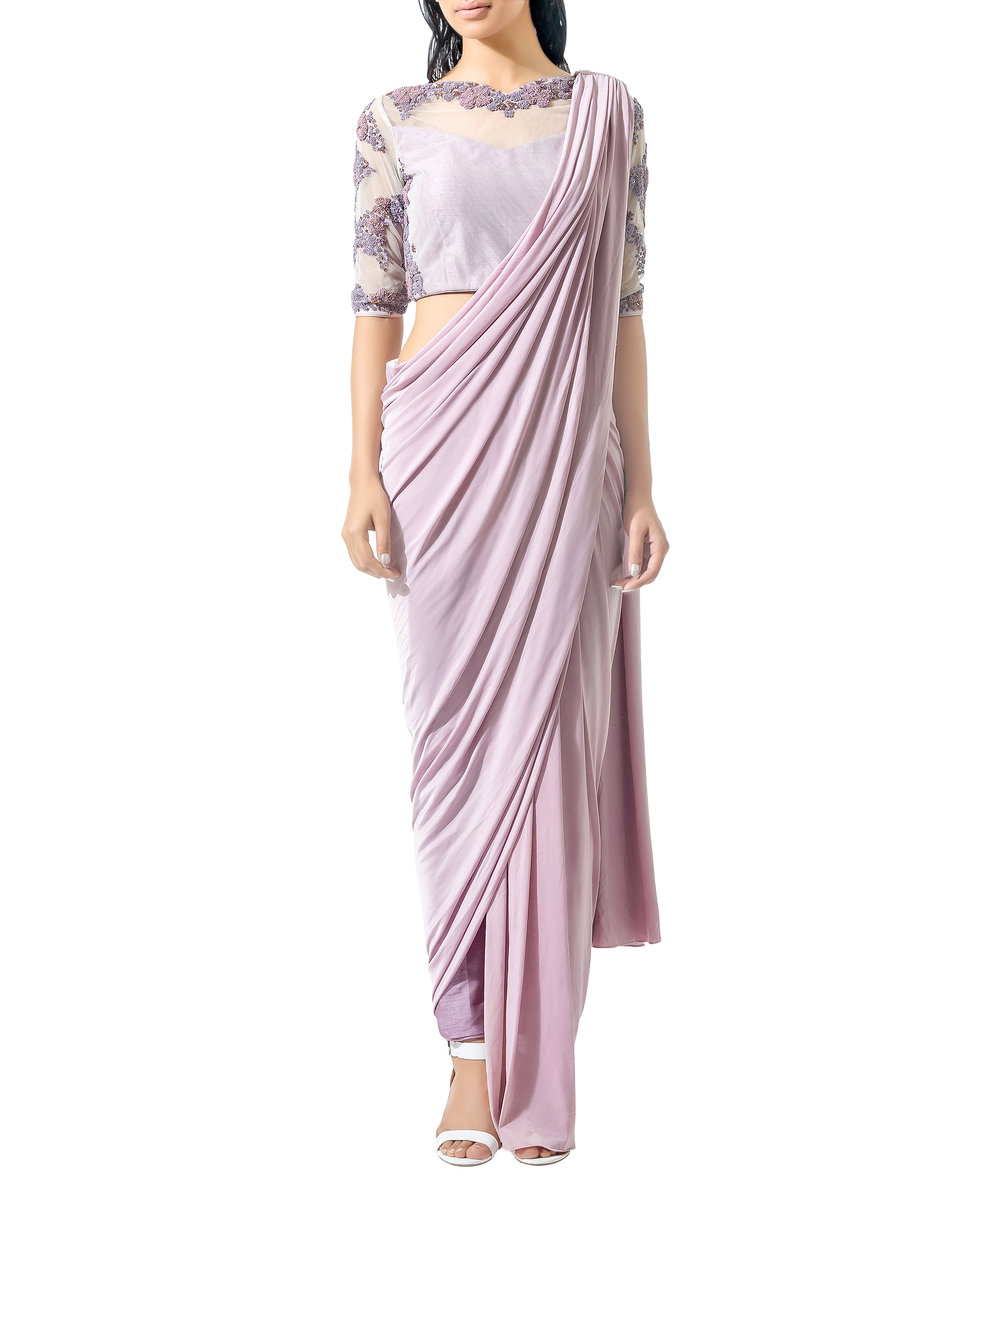 Bhaavya Bhatnagar Mauve Beaded Three Piece Sari Set